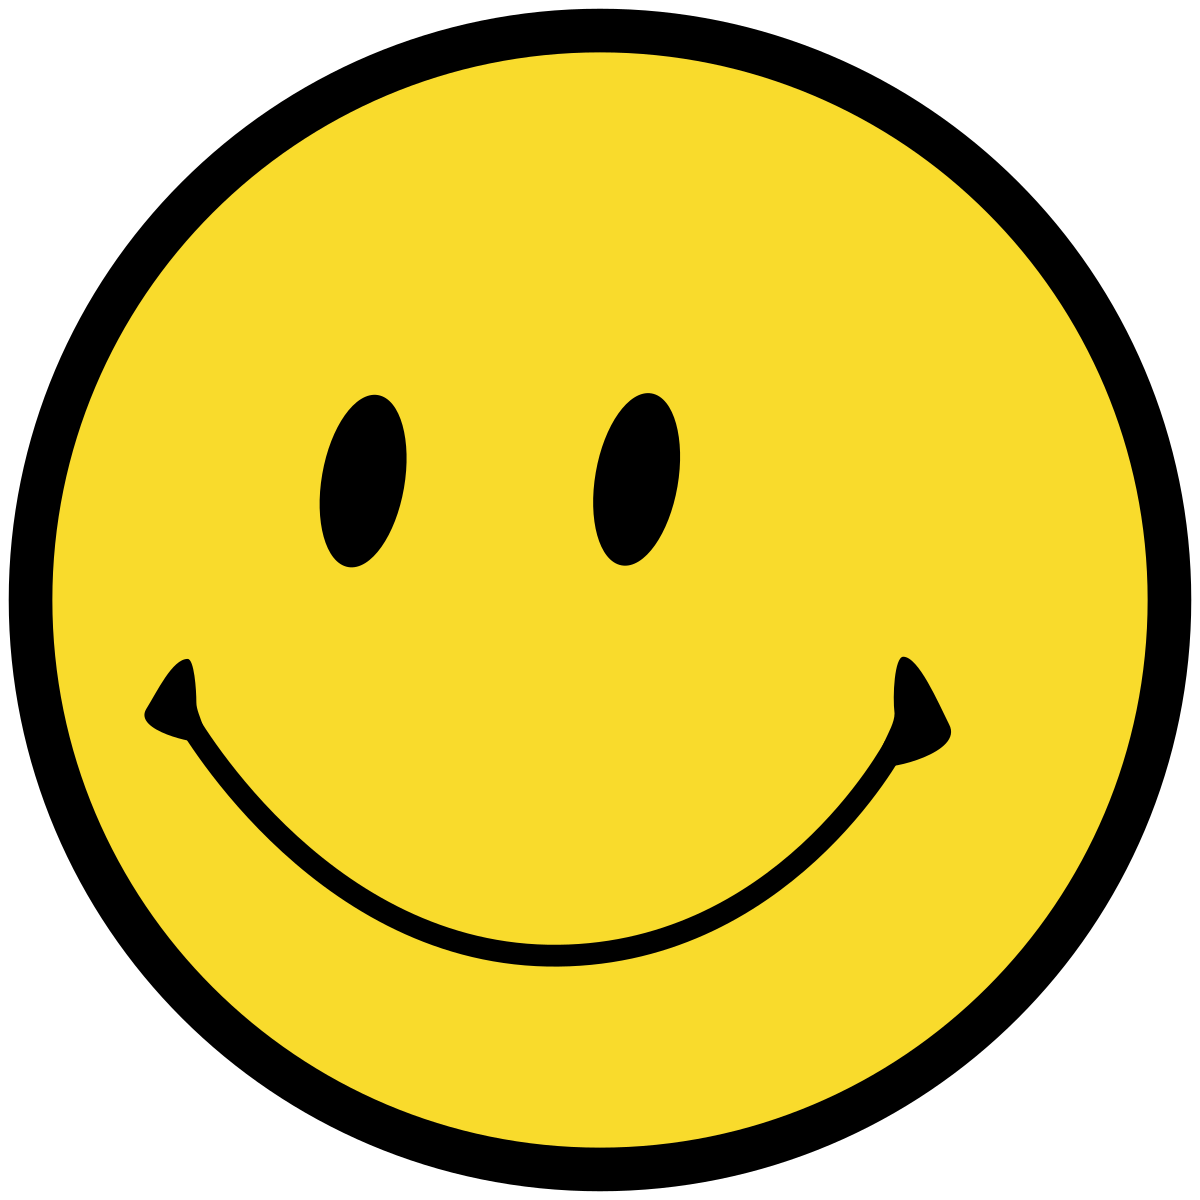 Wikipedia . Smiley face clip art thank you